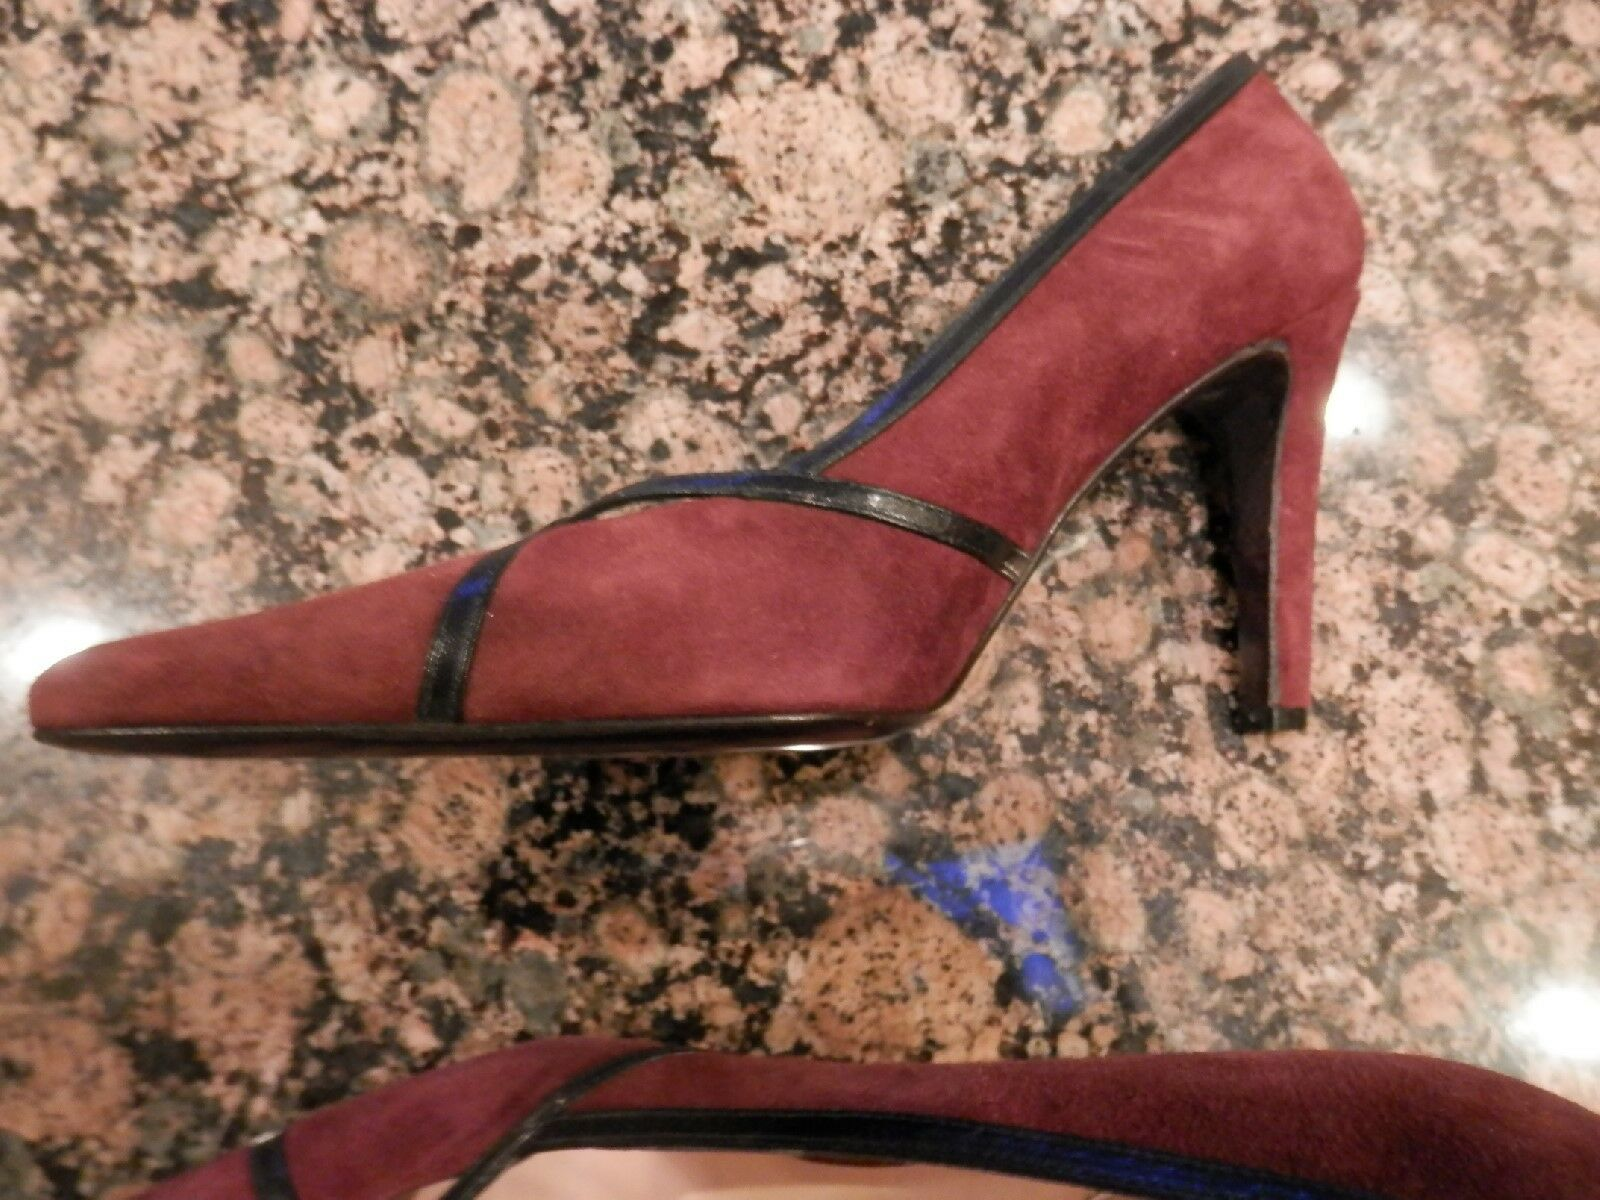 NEW Renaud Pellegrino Women's Shoes Size 6 Burgandy Burgandy 6 Suede w/Black Leather Trim f0265d